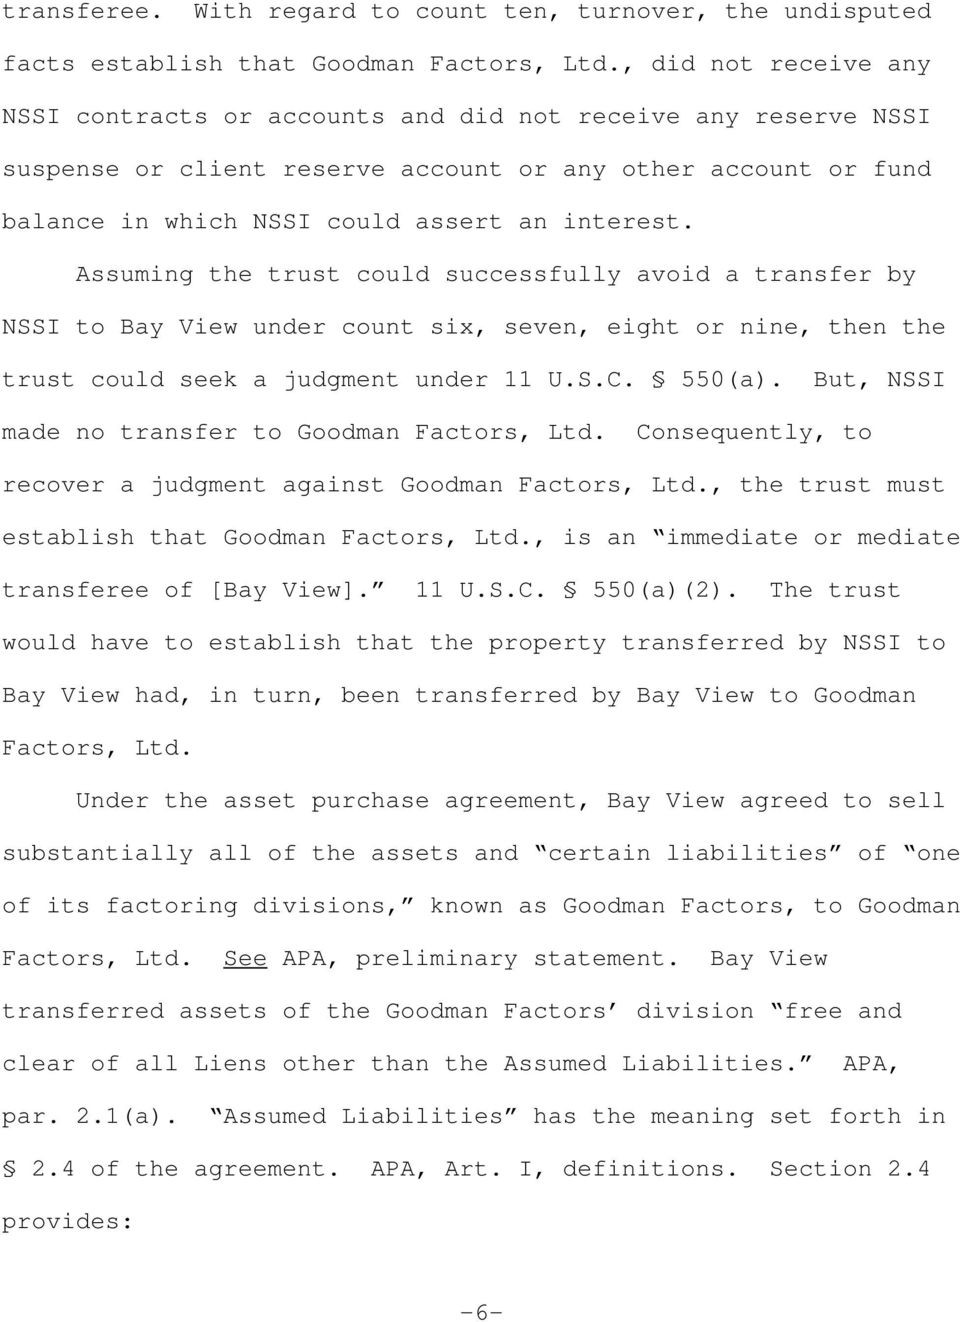 Assuming the trust could successfully avoid a transfer by NSSI to Bay View under count six, seven, eight or nine, then the trust could seek a judgment under 11 U.S.C. 550(a).